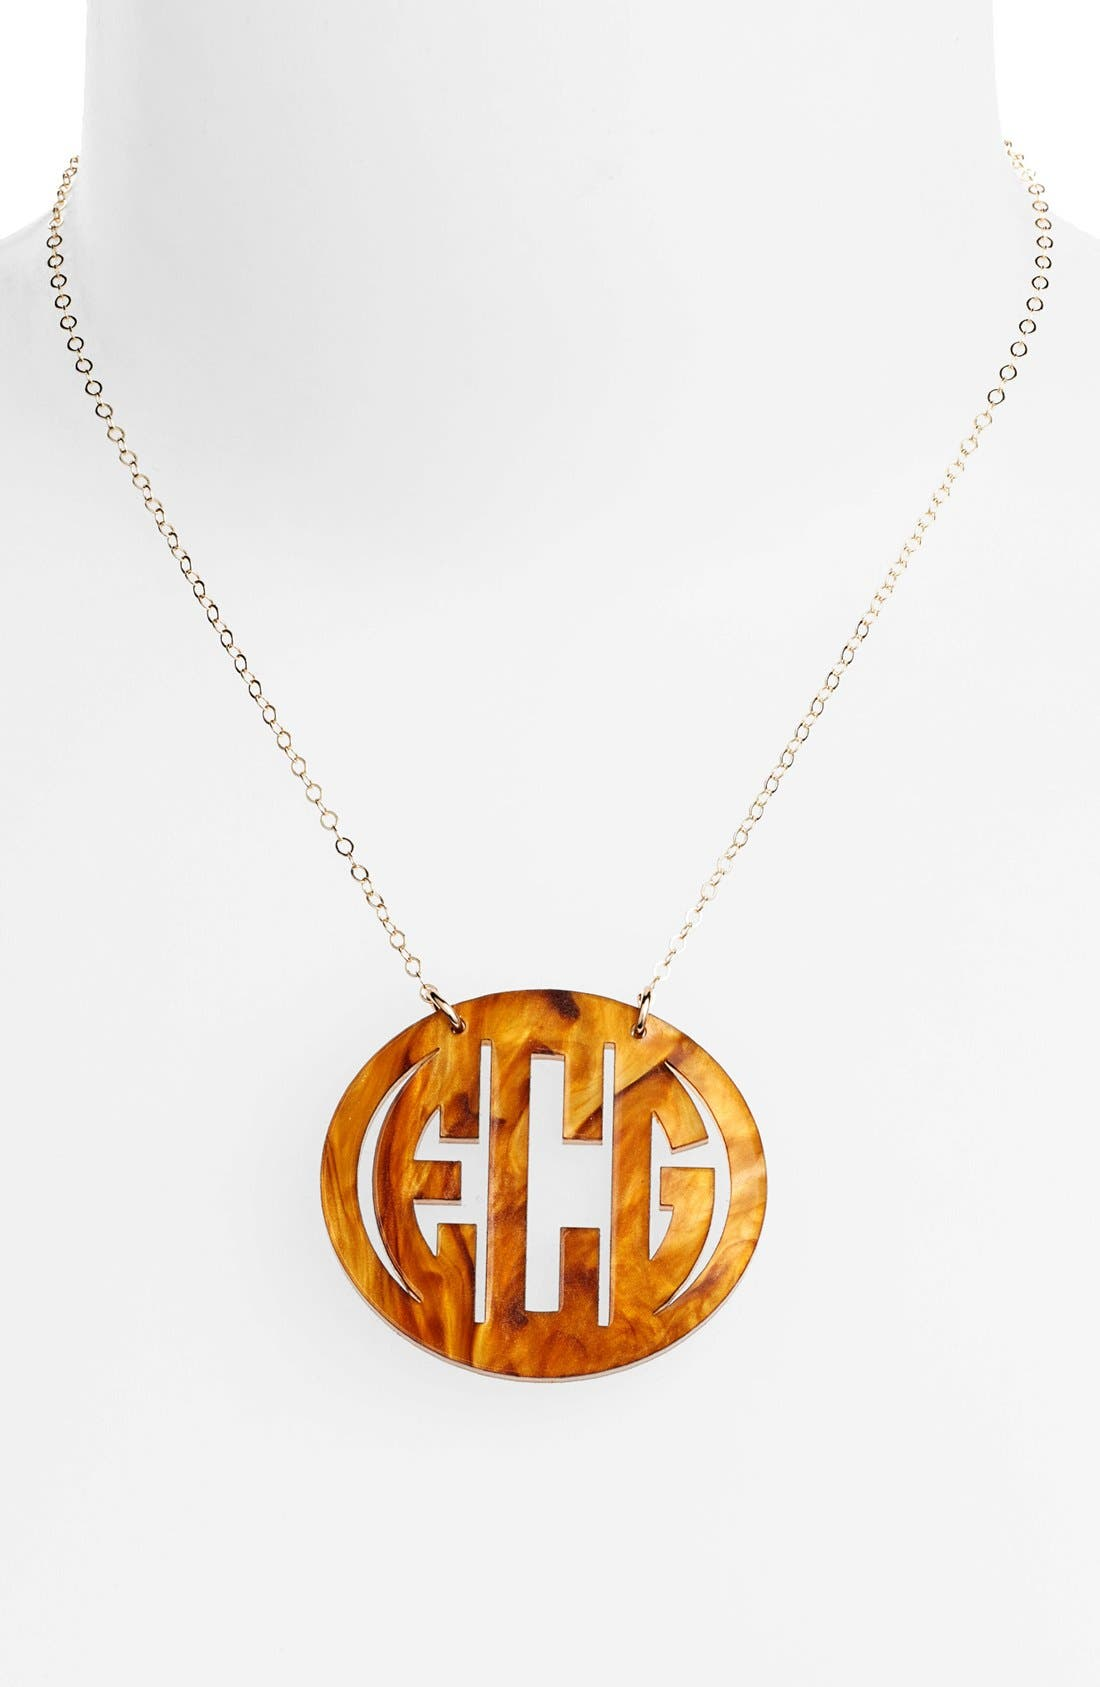 MOON AND LOLA Large Oval Personalized Monogram Pendant Necklace (Nordstrom Exclusive) in Tigers Eye/ Gold